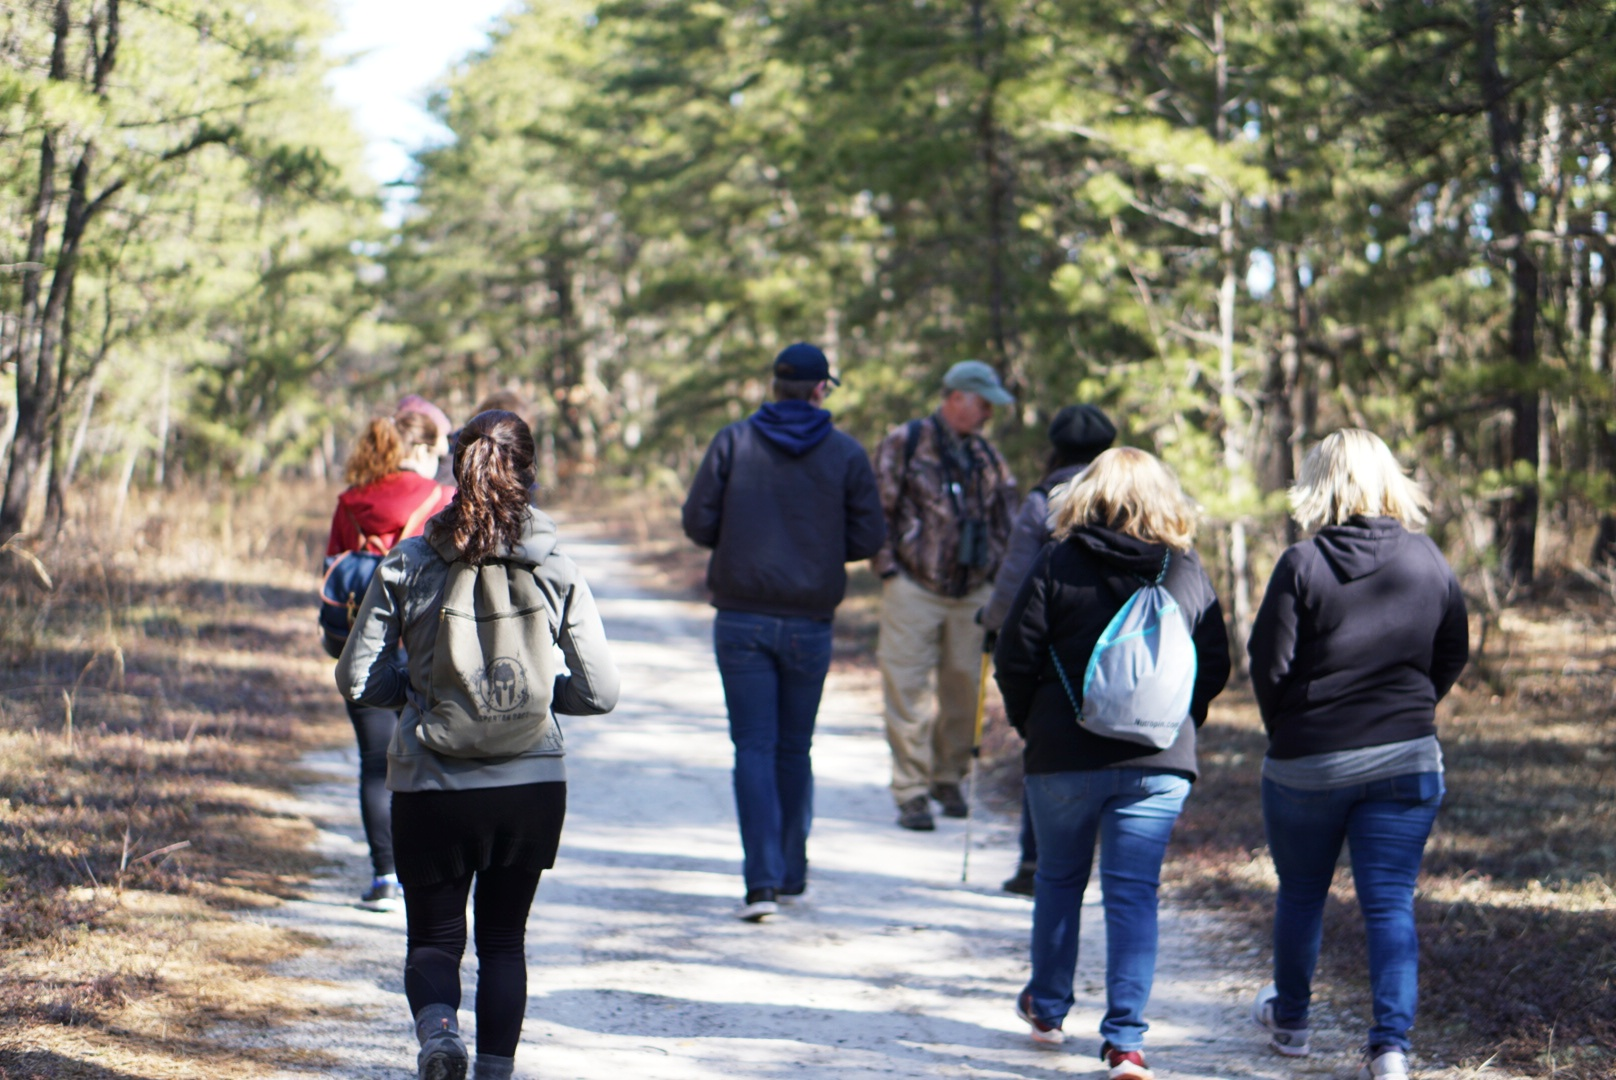 Group of people hiking in Cranberry Bog Preserve